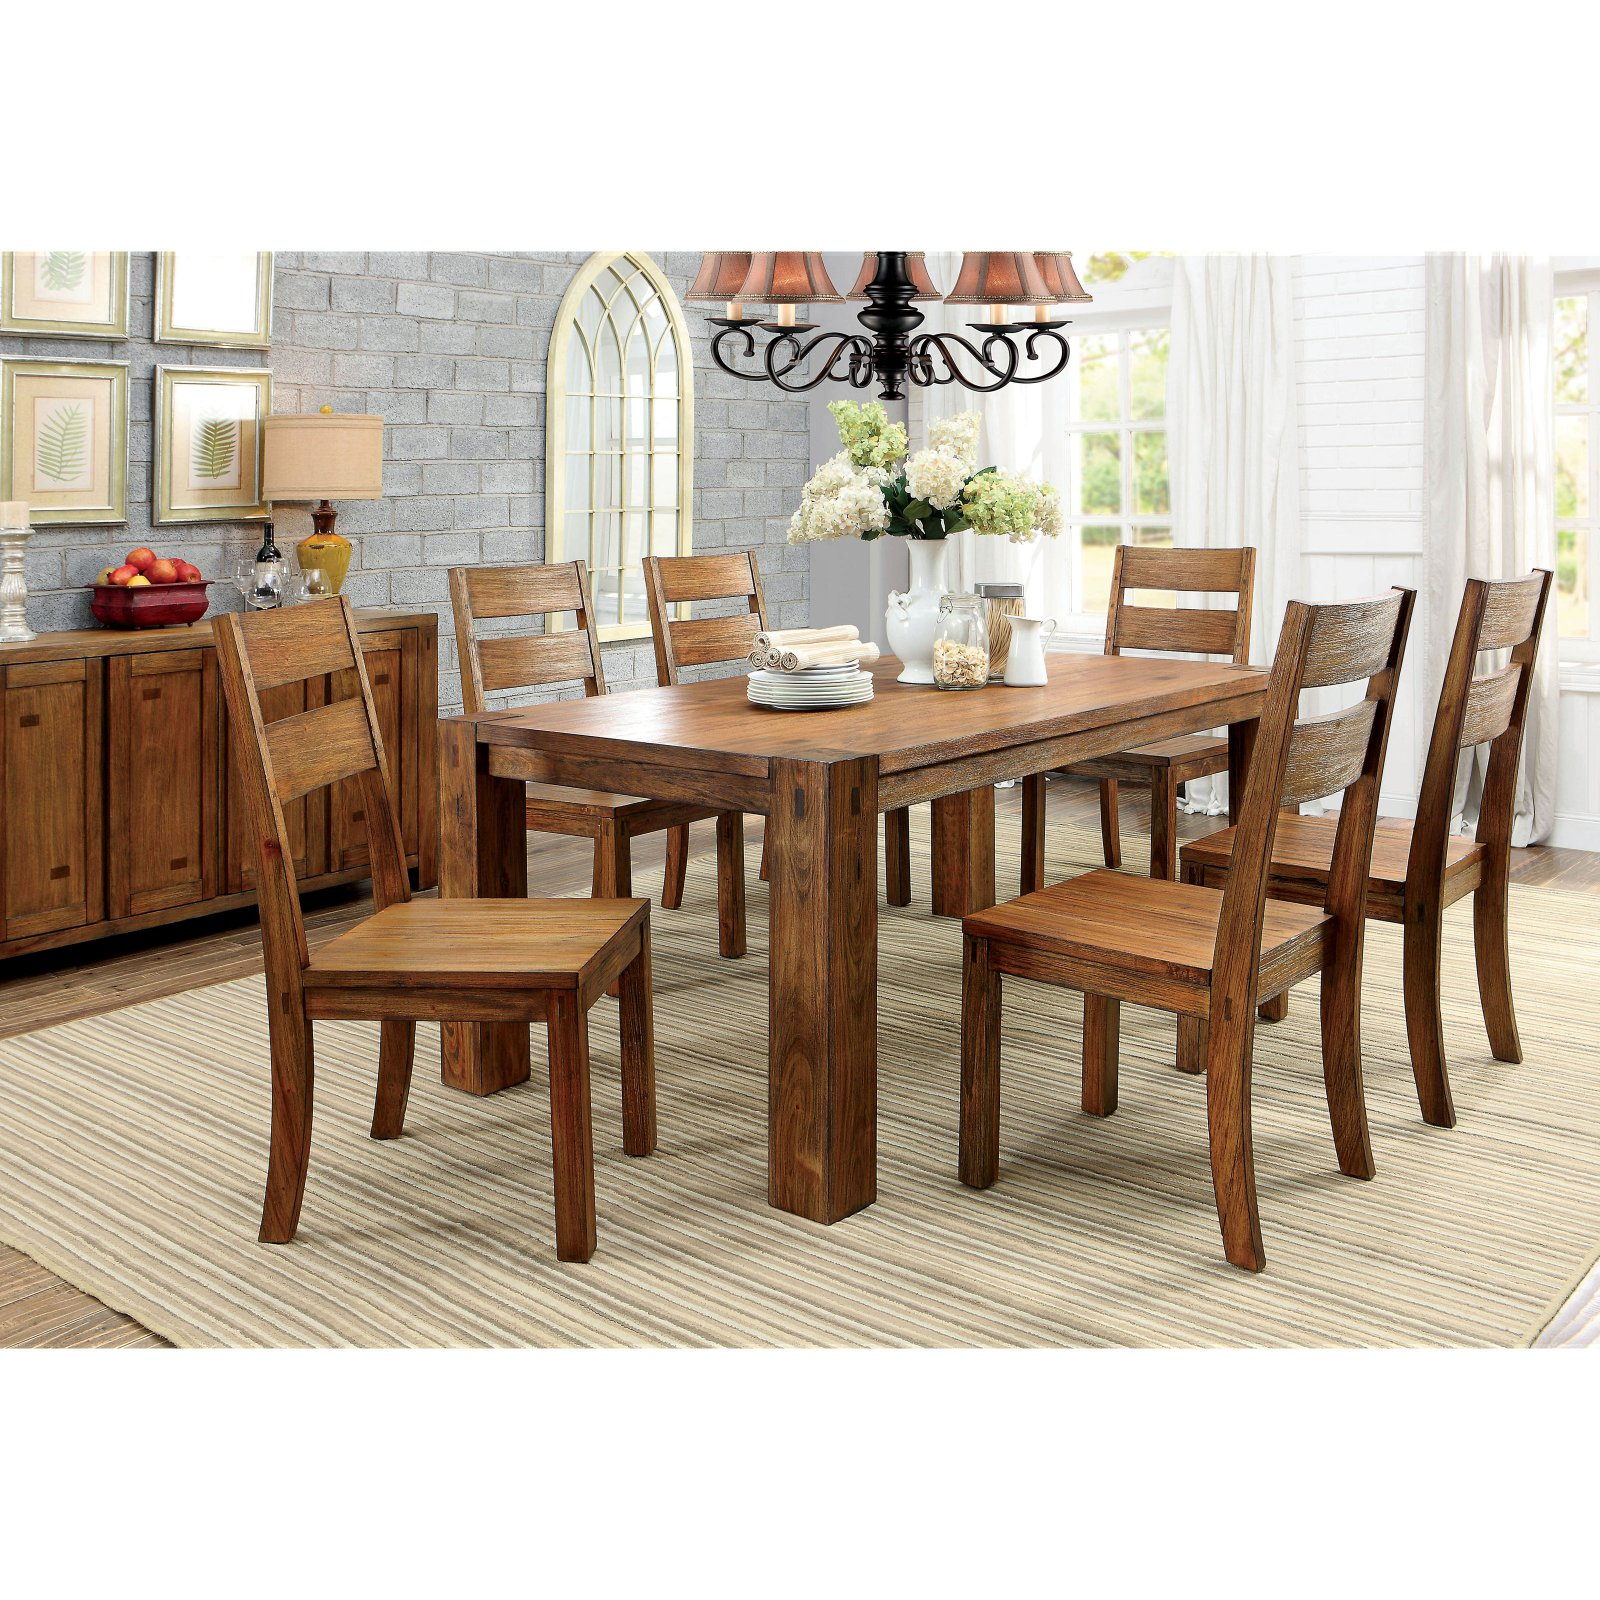 Furniture of America Branson Dining Table